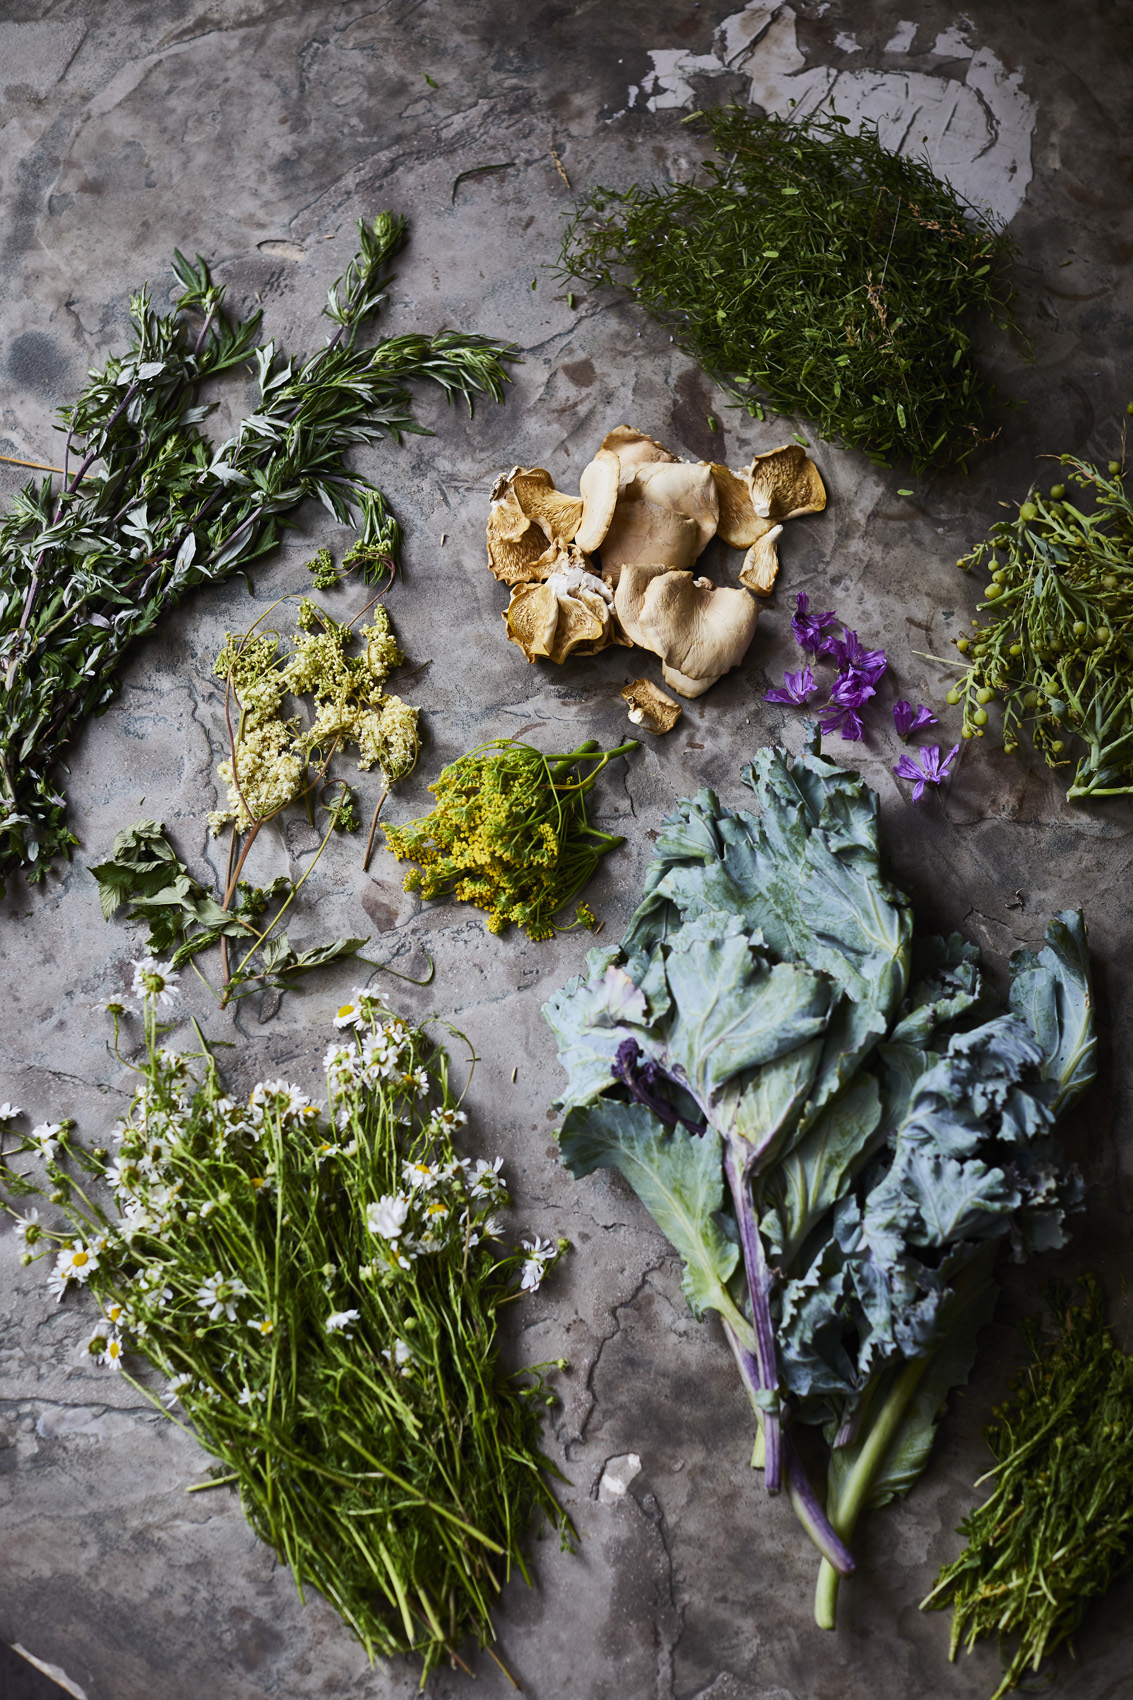 SteveRyan_Photographer_Ingredients_Produce_Vegetables_Foraged_02